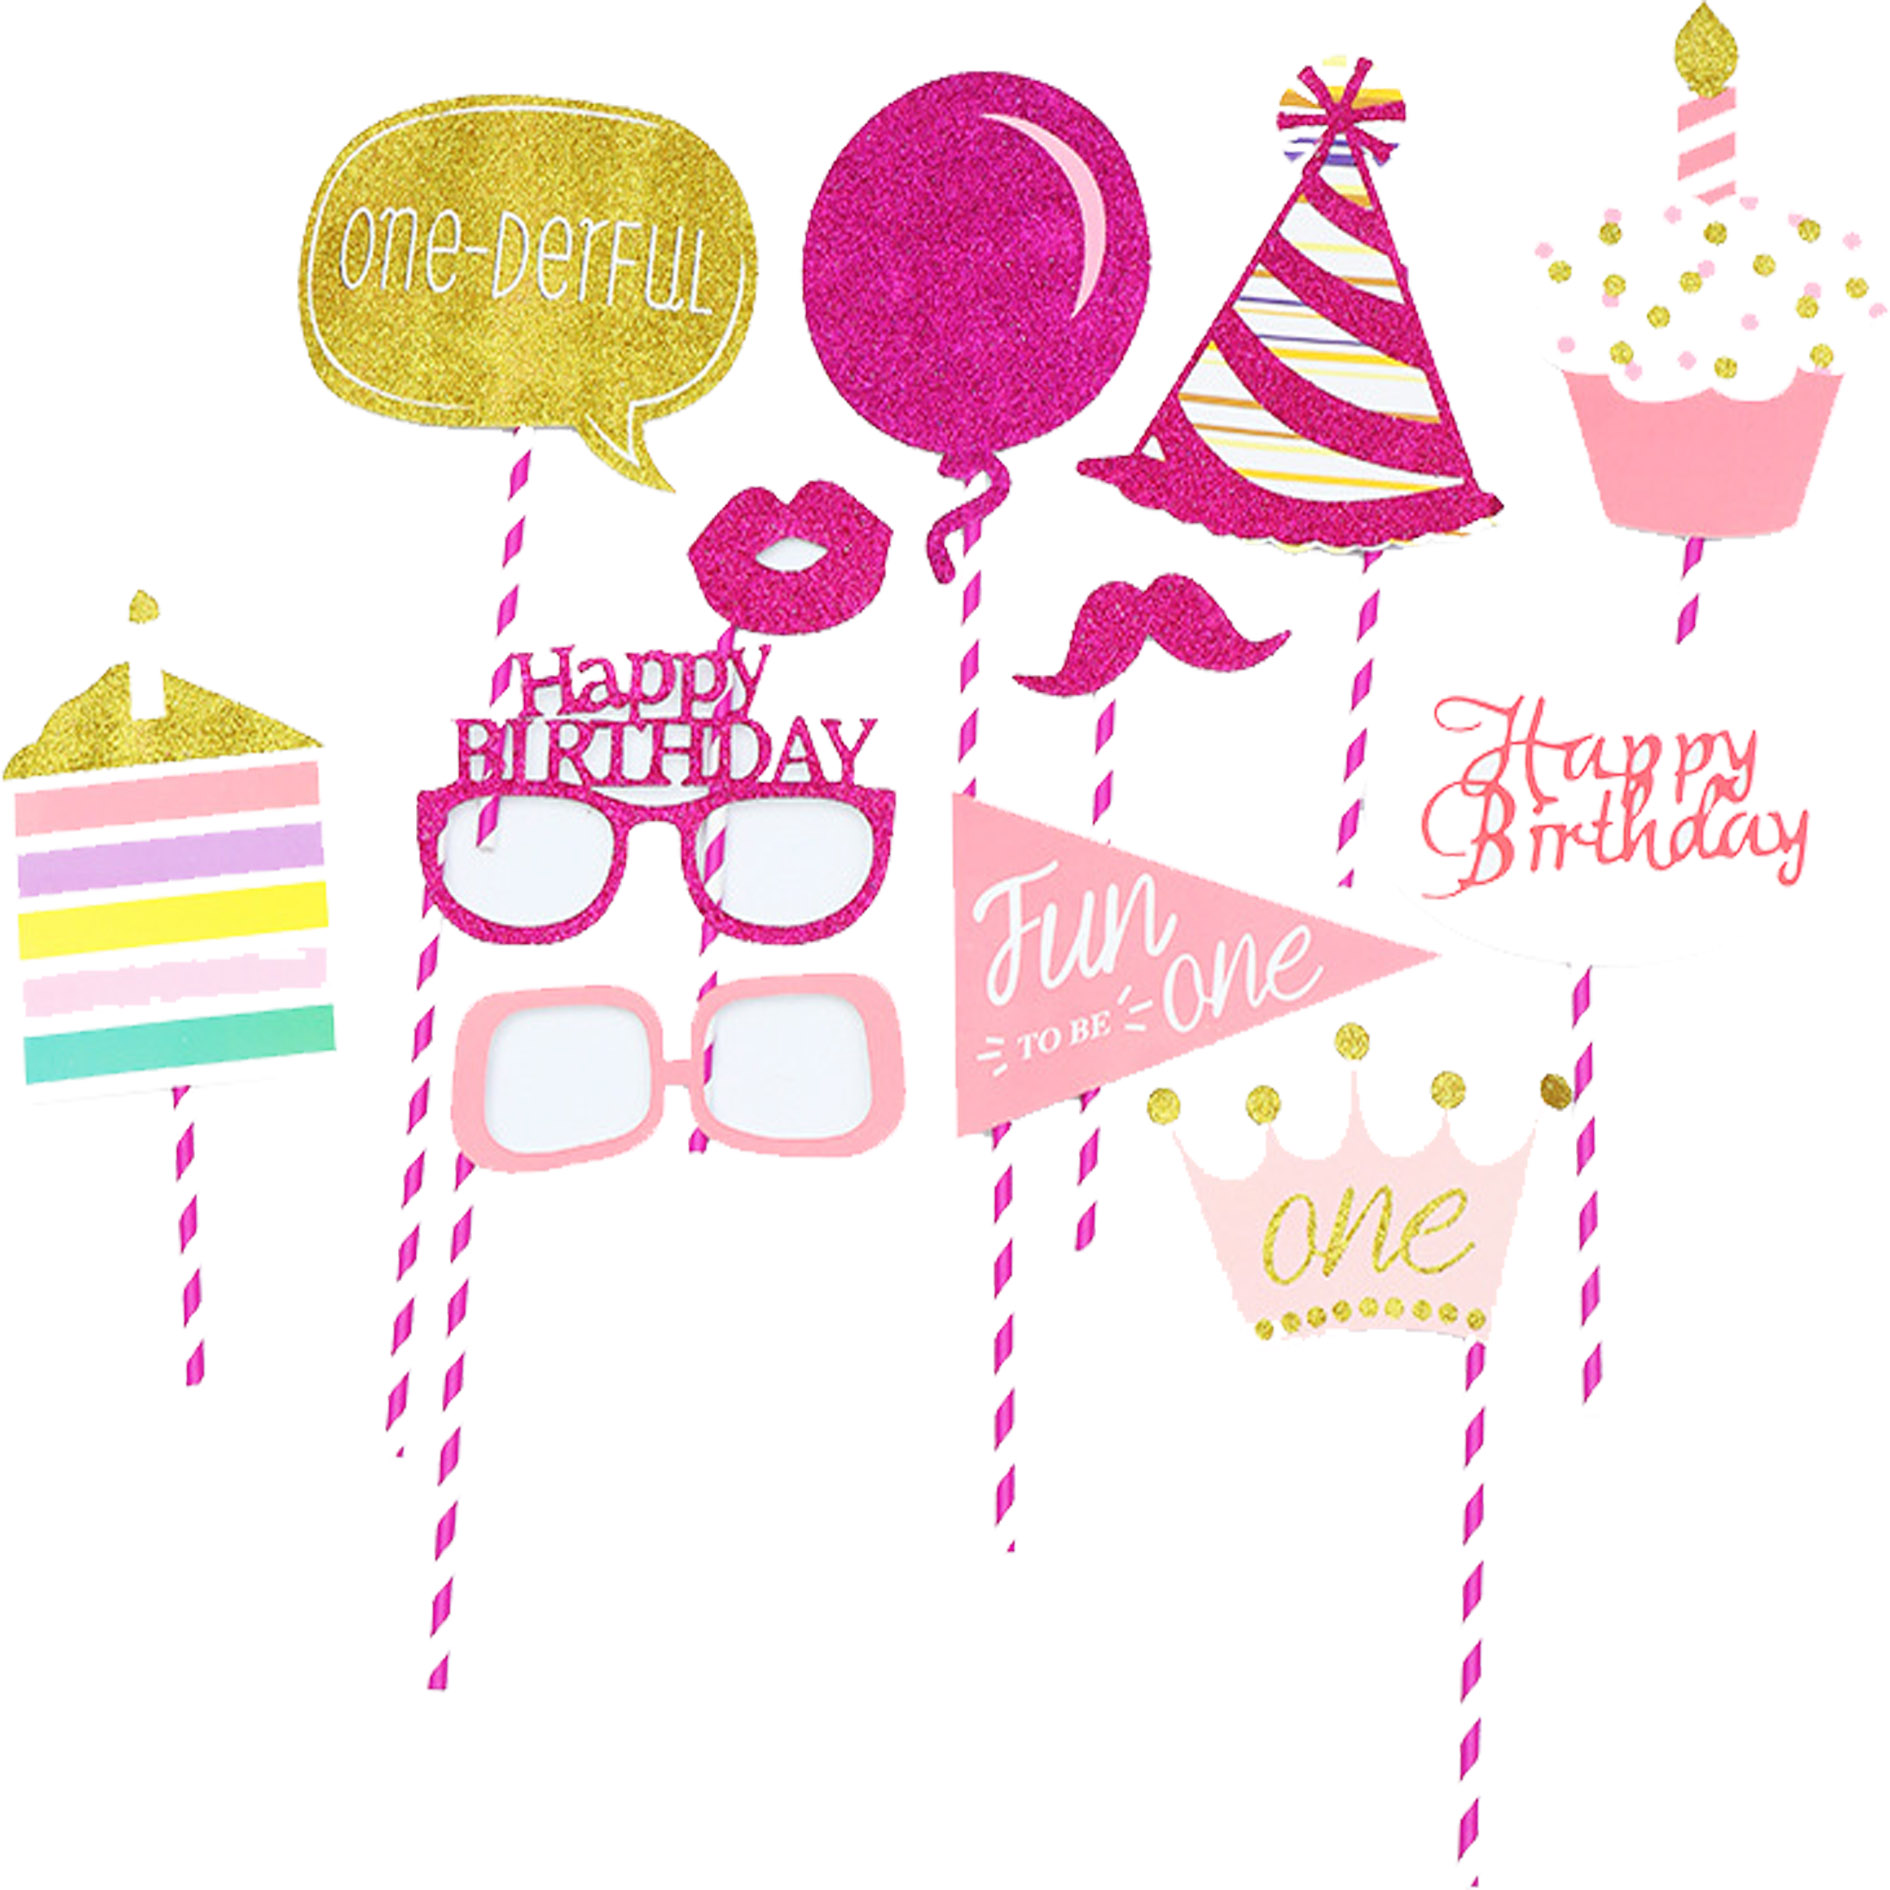 Diy Photo Booth Props Baby Shower Photobooth Boy Girl Pink 1st Birthday 1th 1 Year Old One Decoration Funny Favor Party Supplies Buy At The Price Of 3 55 In Aliexpress Com Imall Com